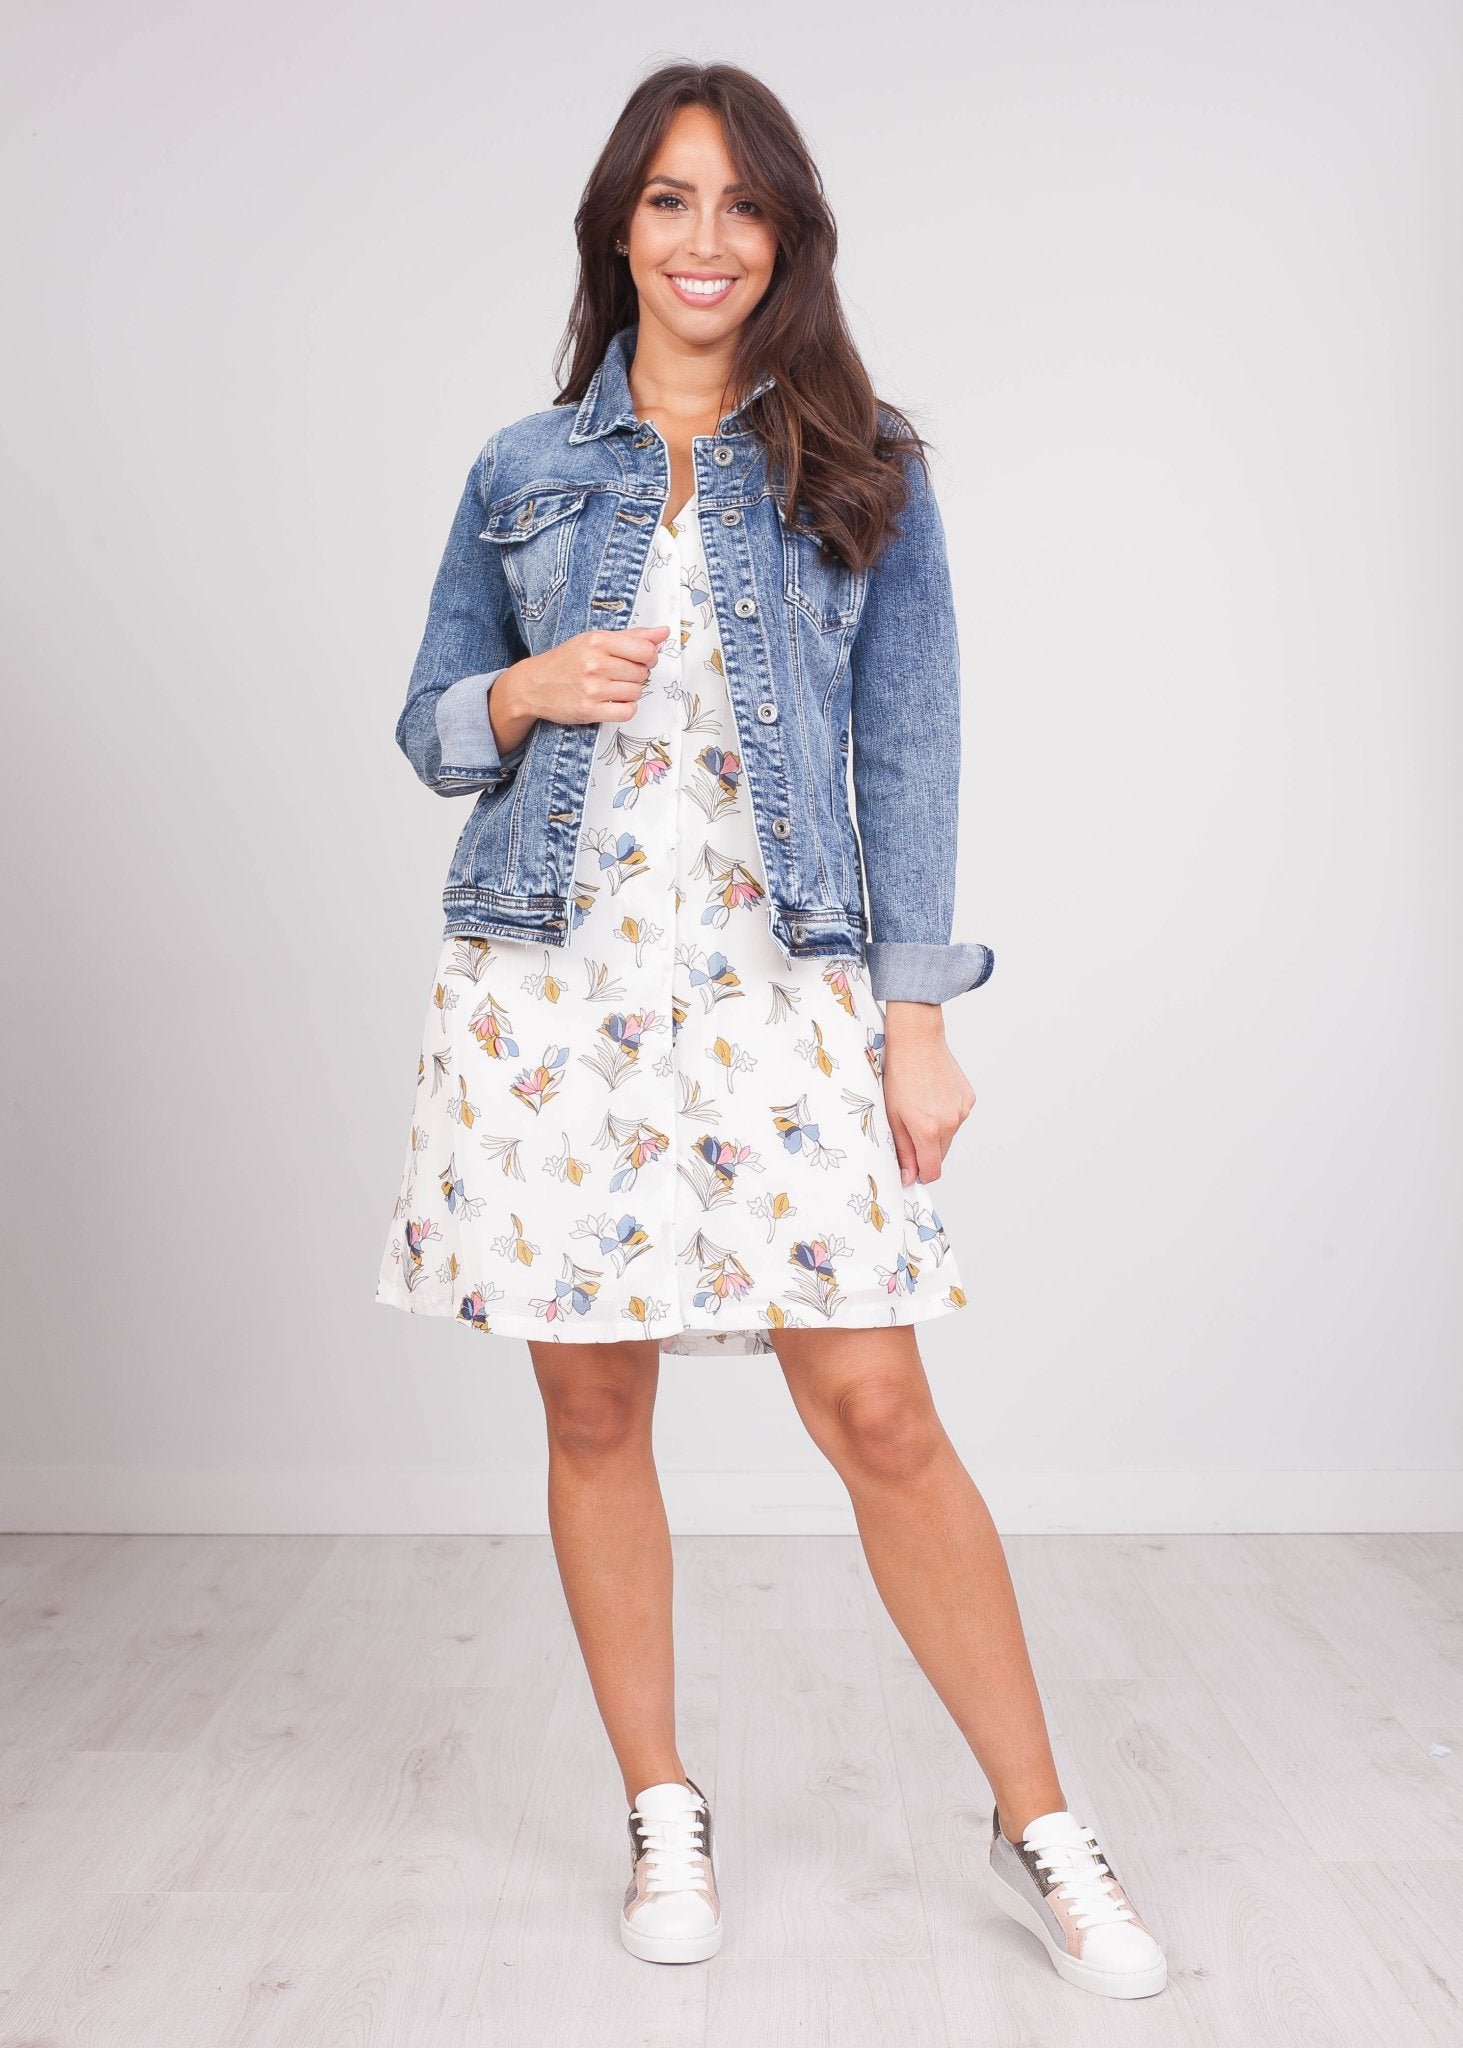 Cherie White Printed Dress - The Walk in Wardrobe